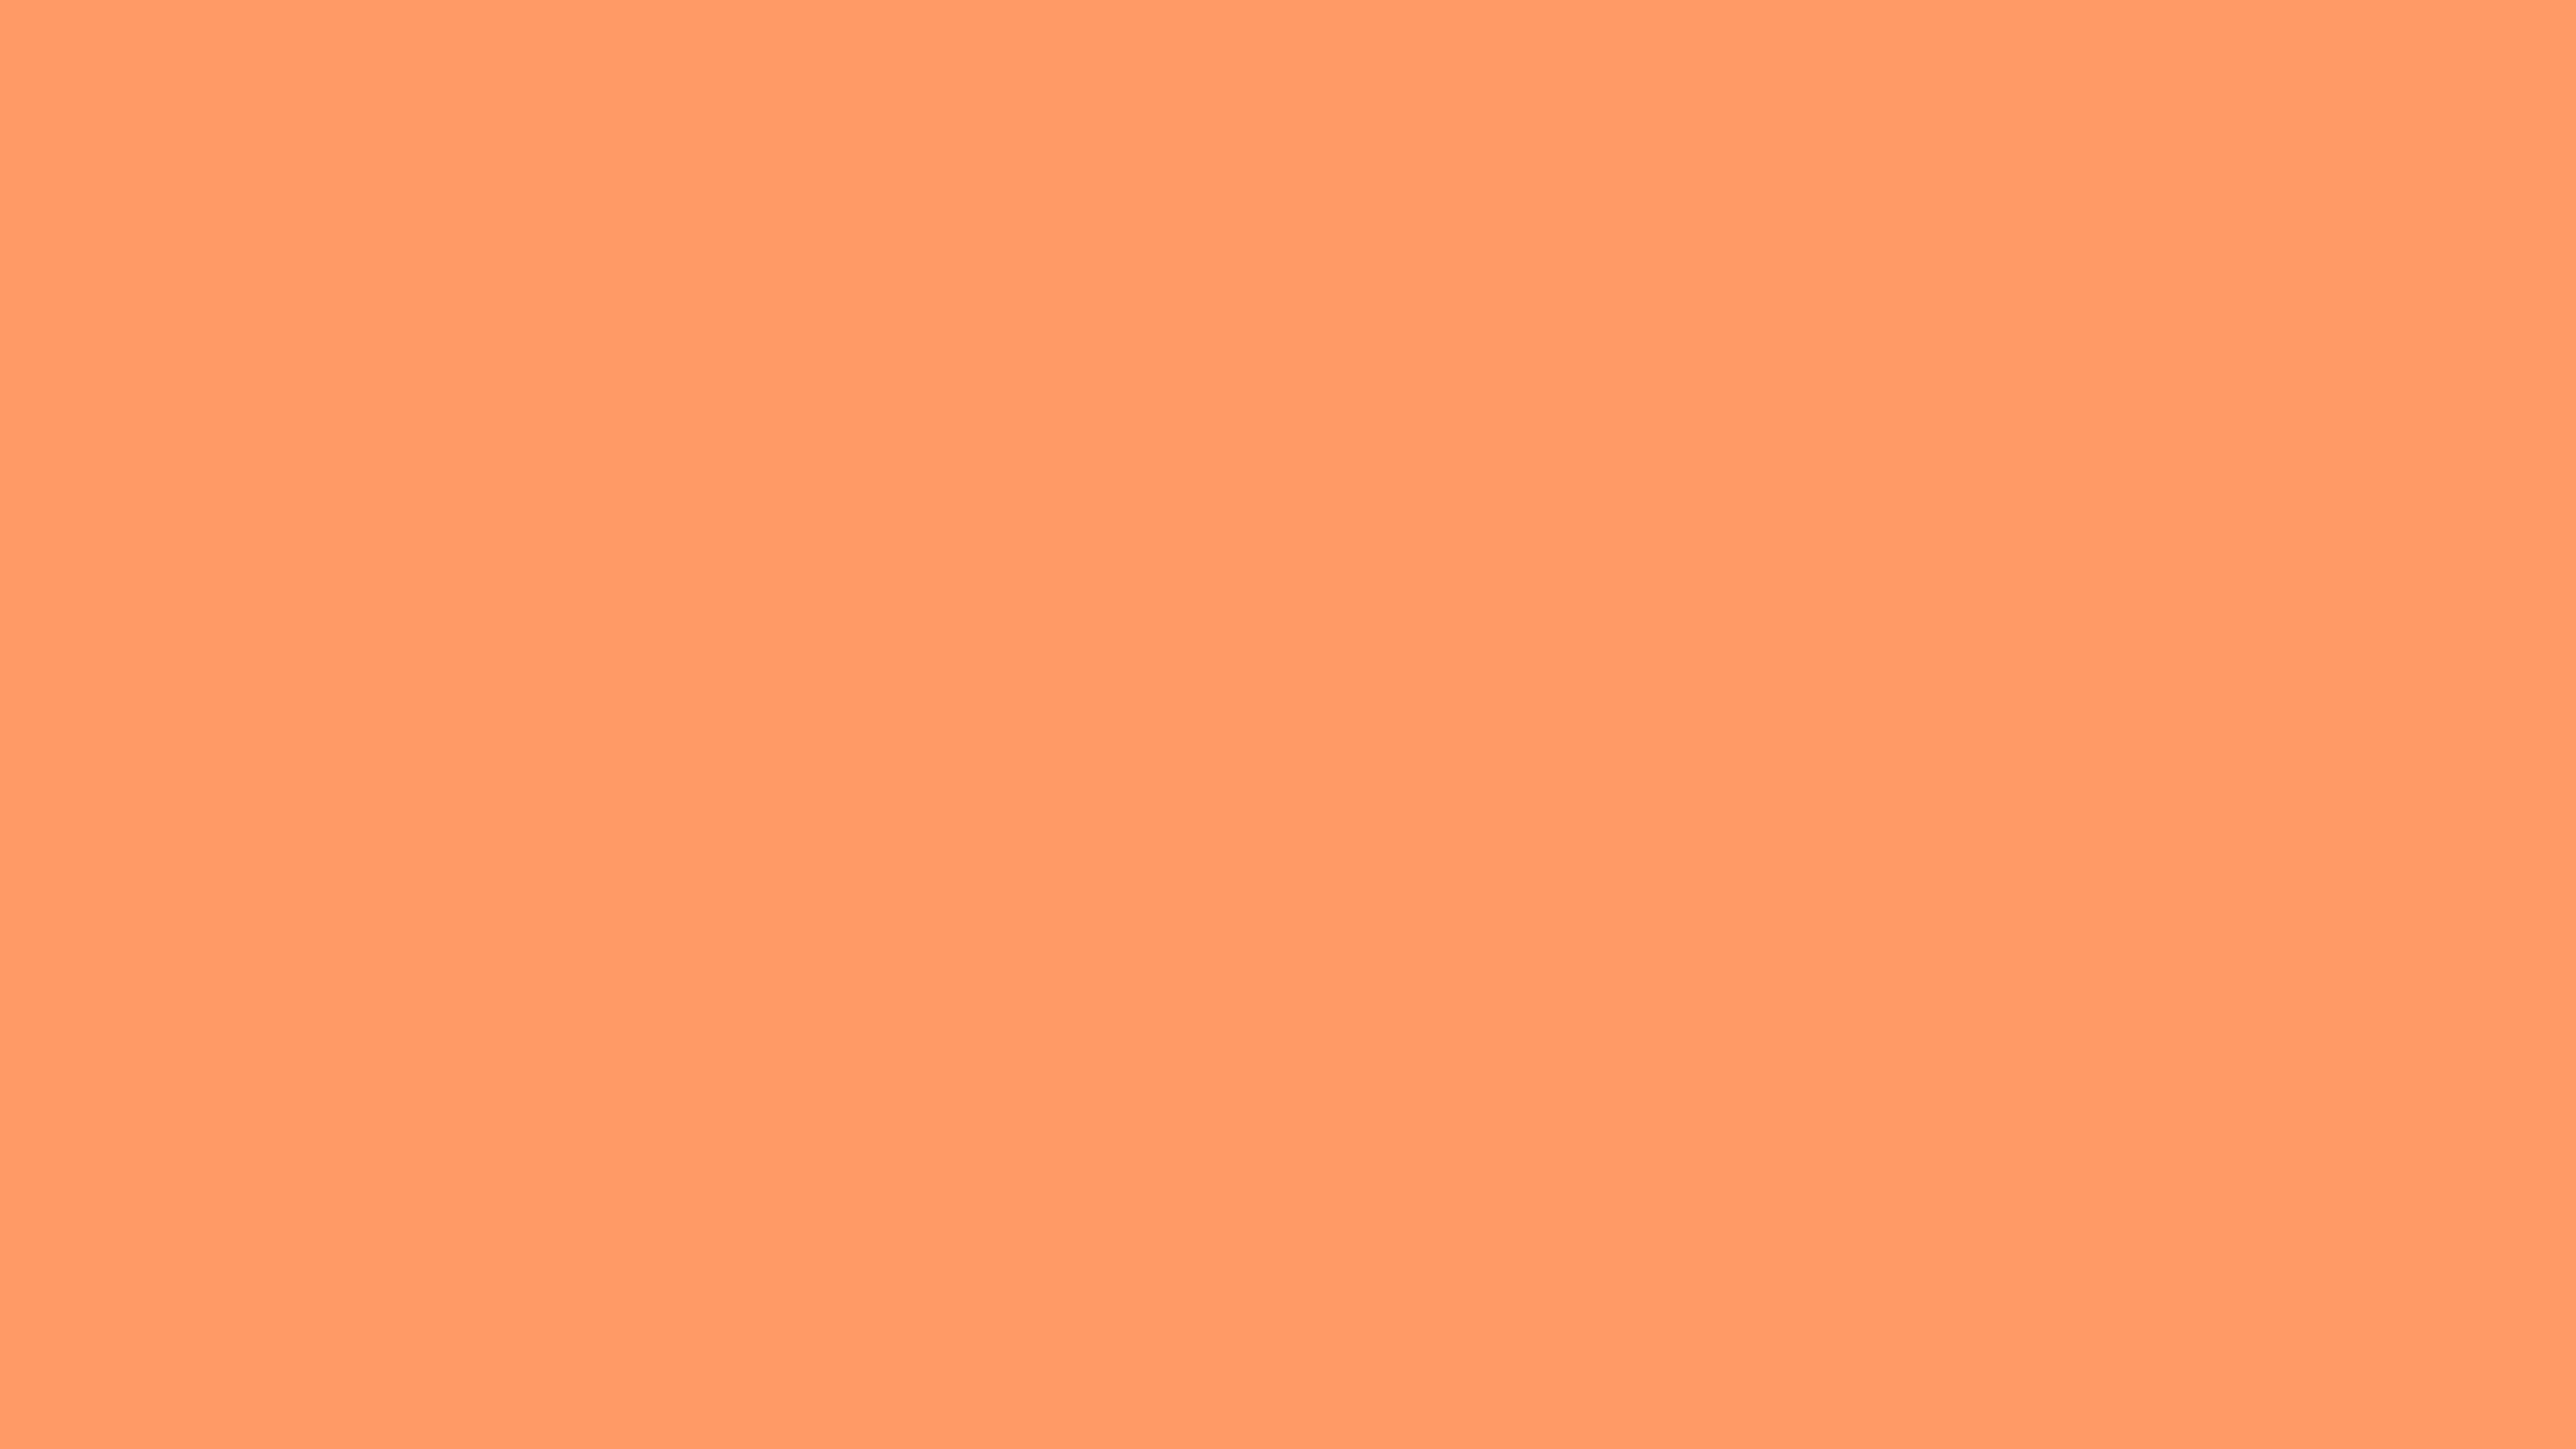 5120x2880 Atomic Tangerine Solid Color Background